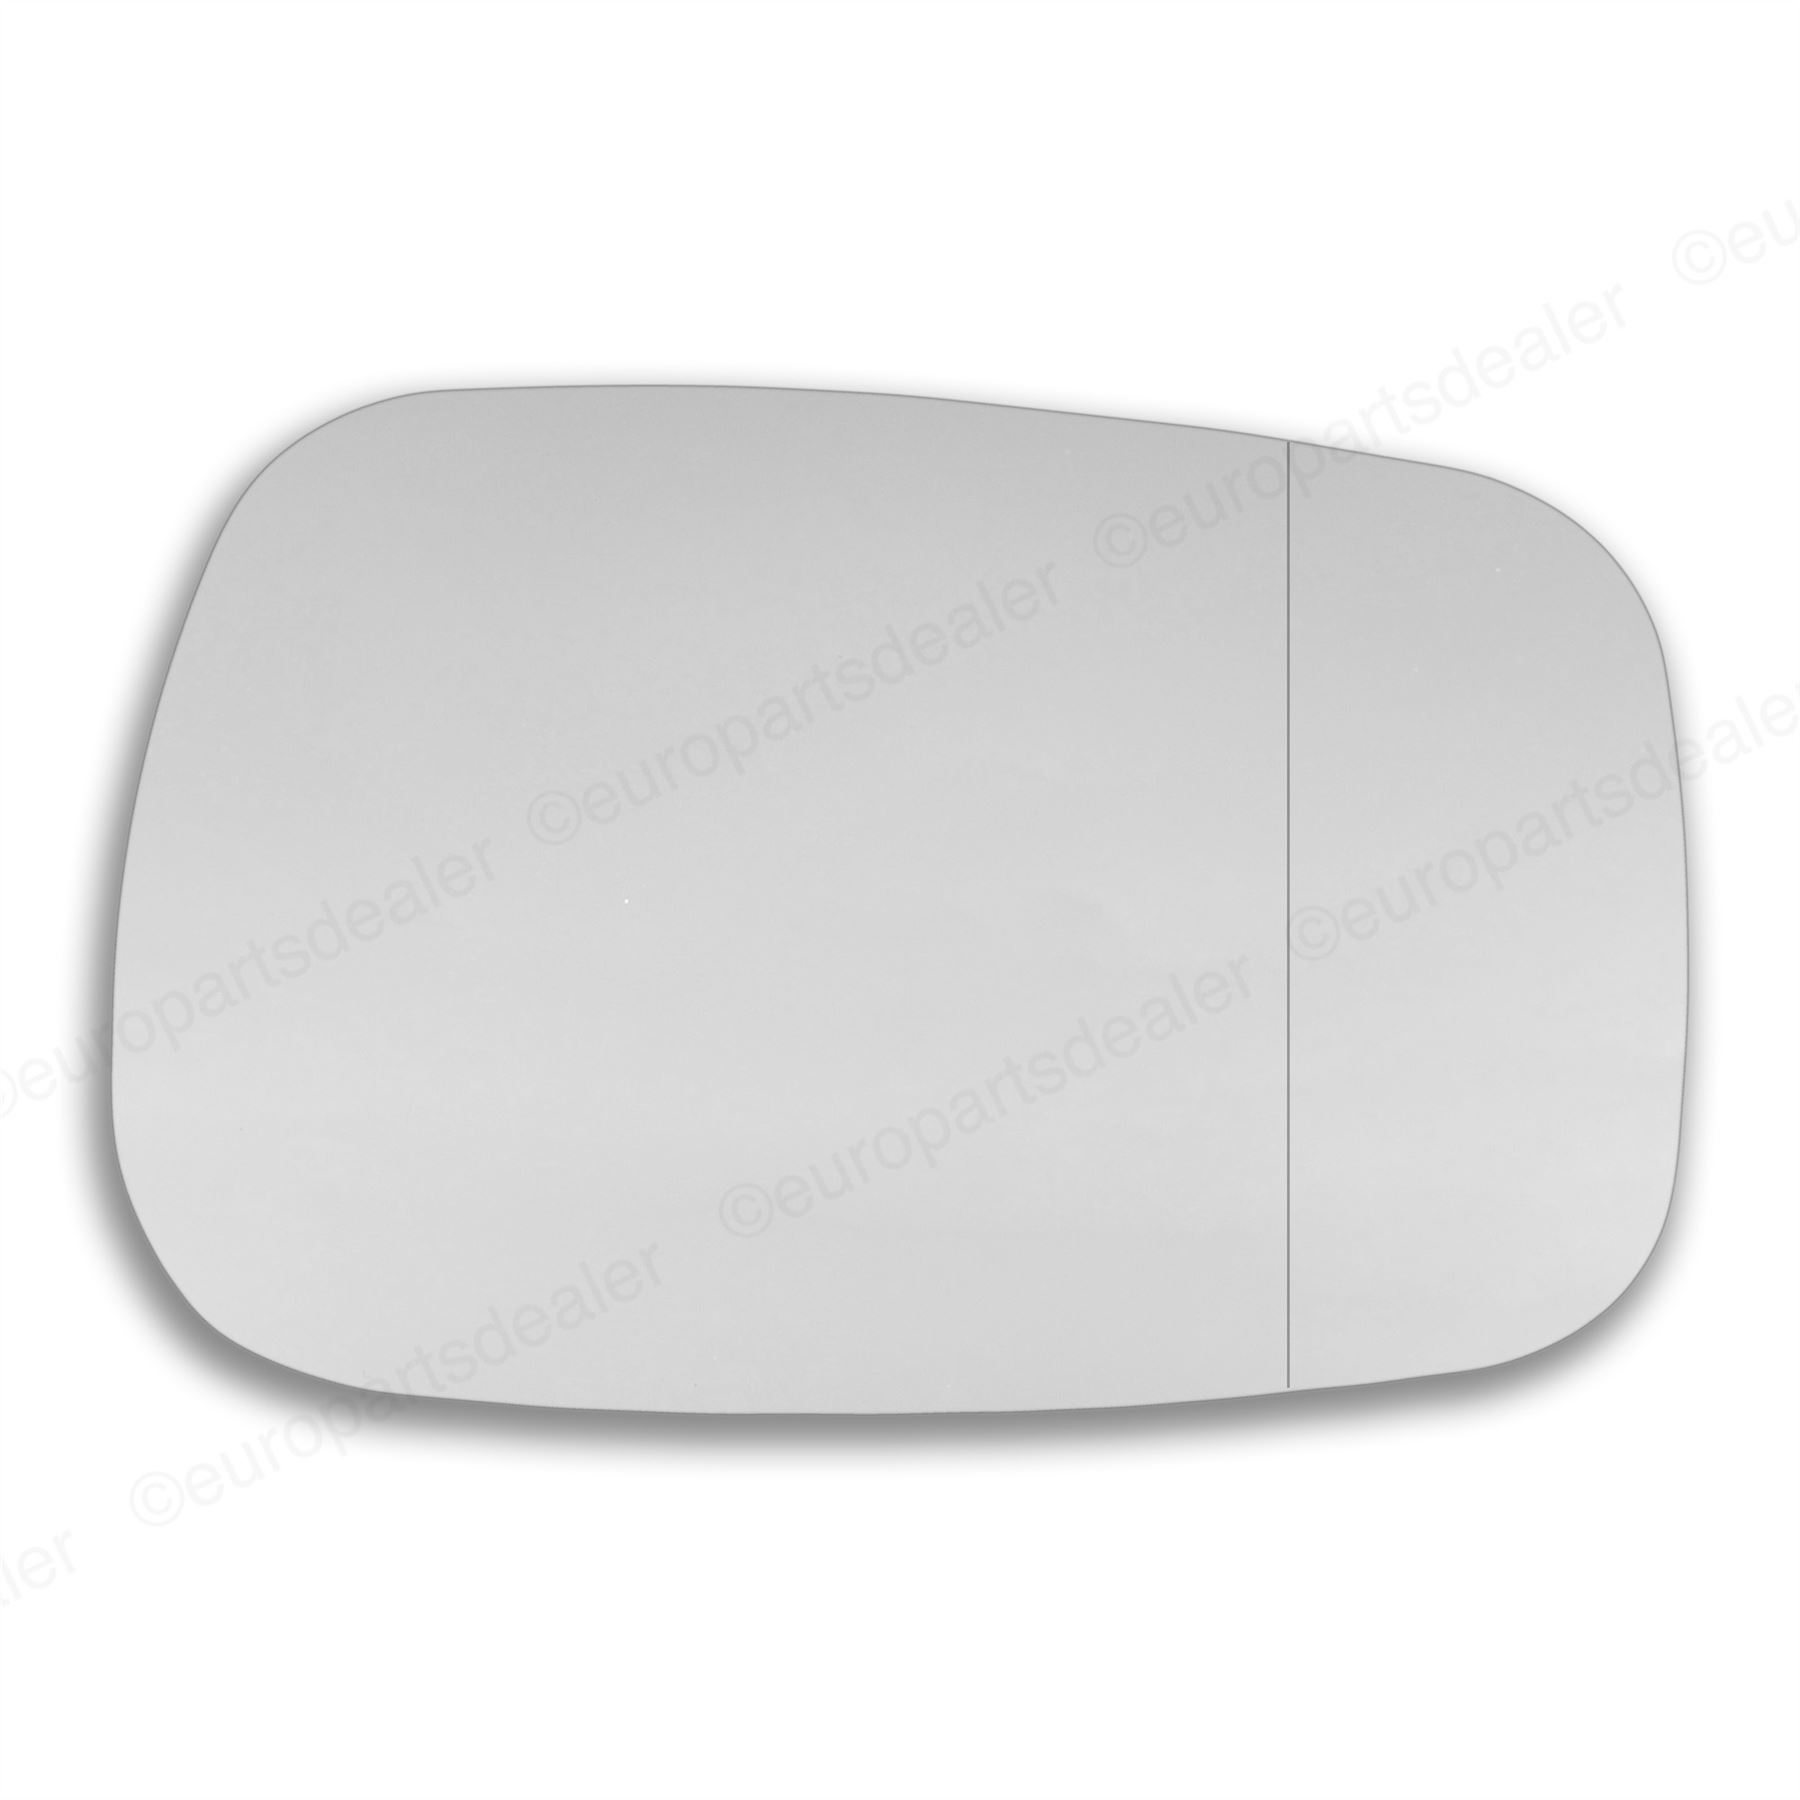 For Renault Kangoo 2002-08 left Passenger Side WIDE ANGLE WING MIRROR GLASS